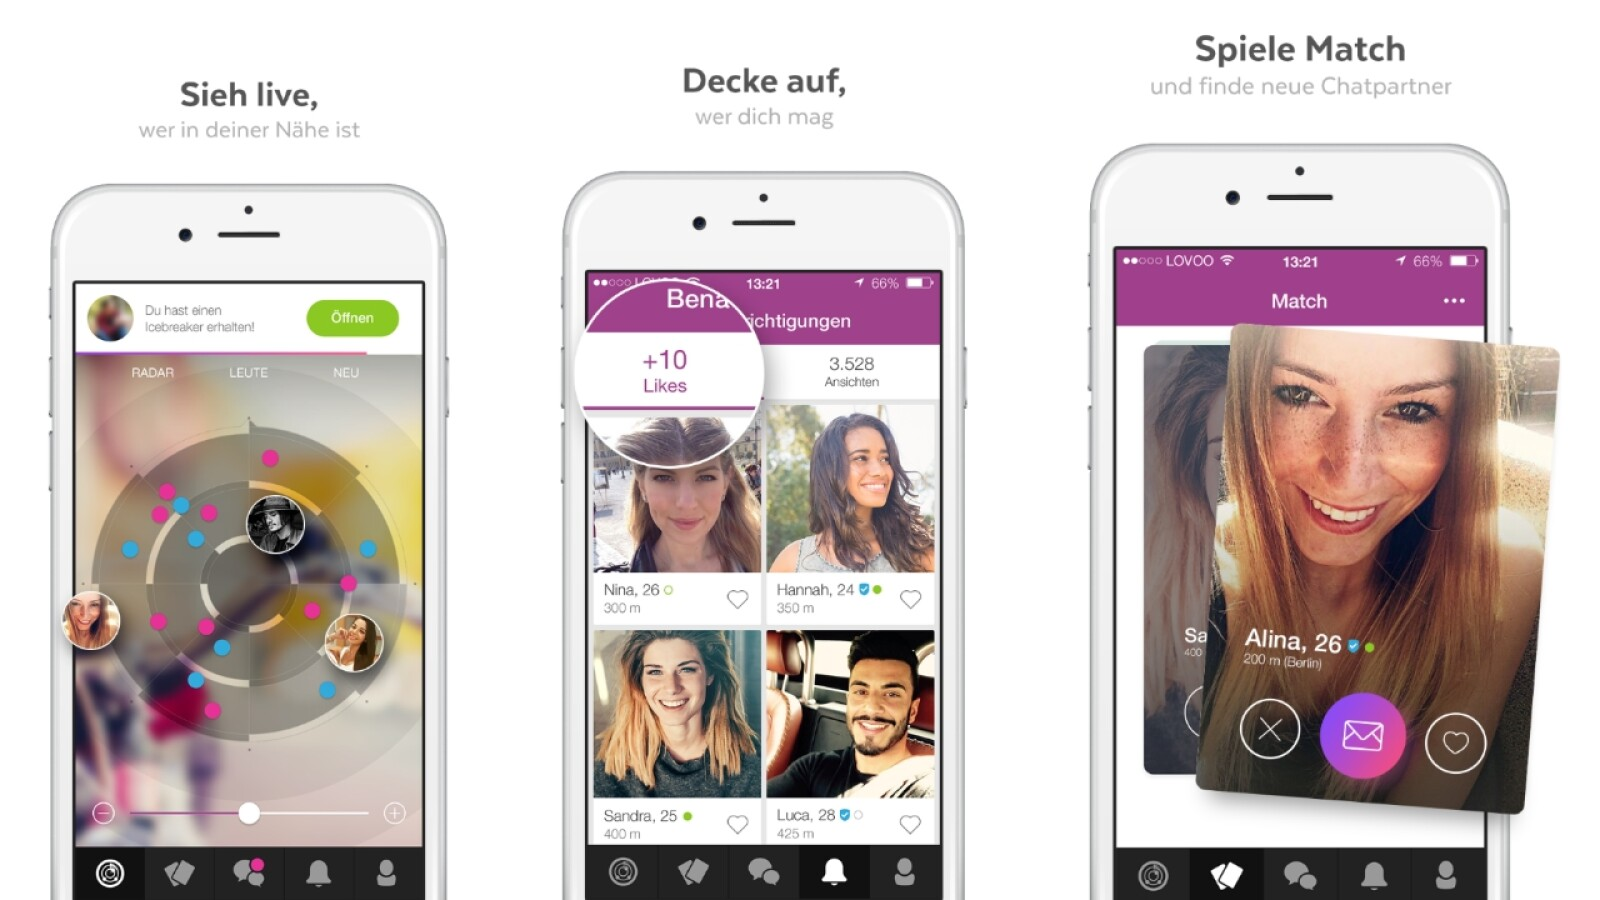 Lovoo alle likes verbraucht